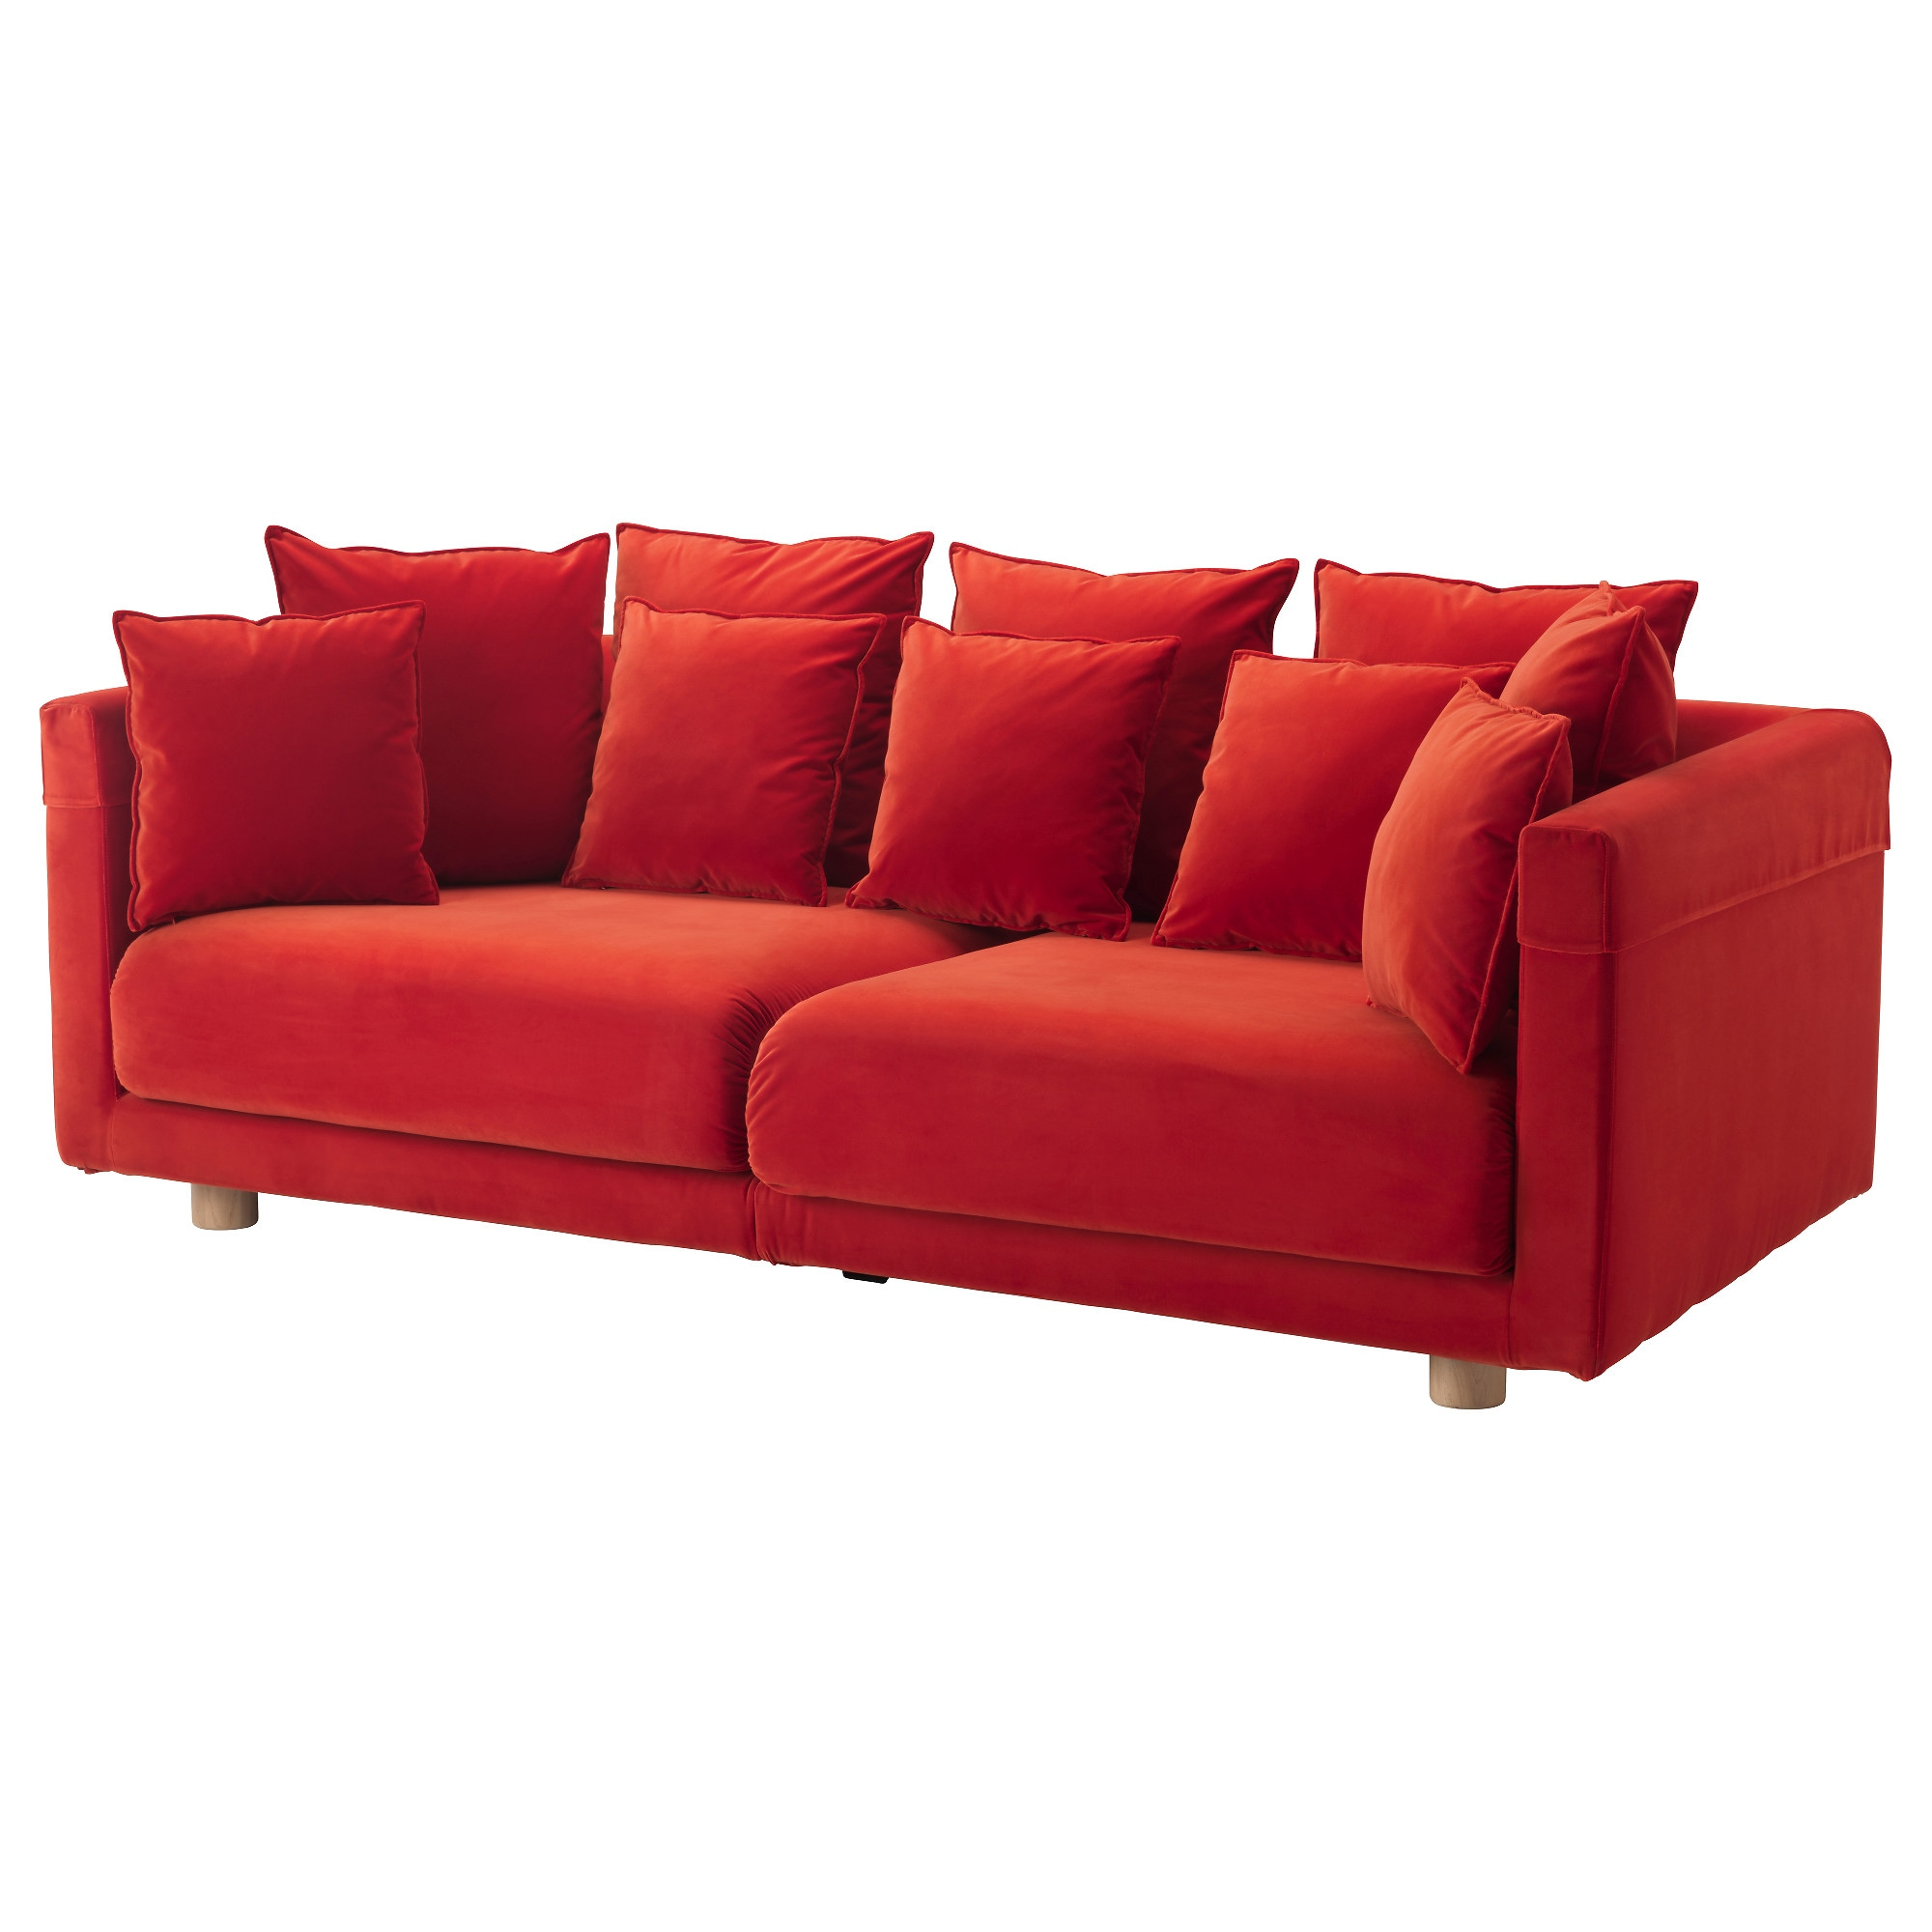 Ikea Orange Sofa Klippan Loveseat Ikea Oh Yes This Will Be In Our Office Very Thesofa